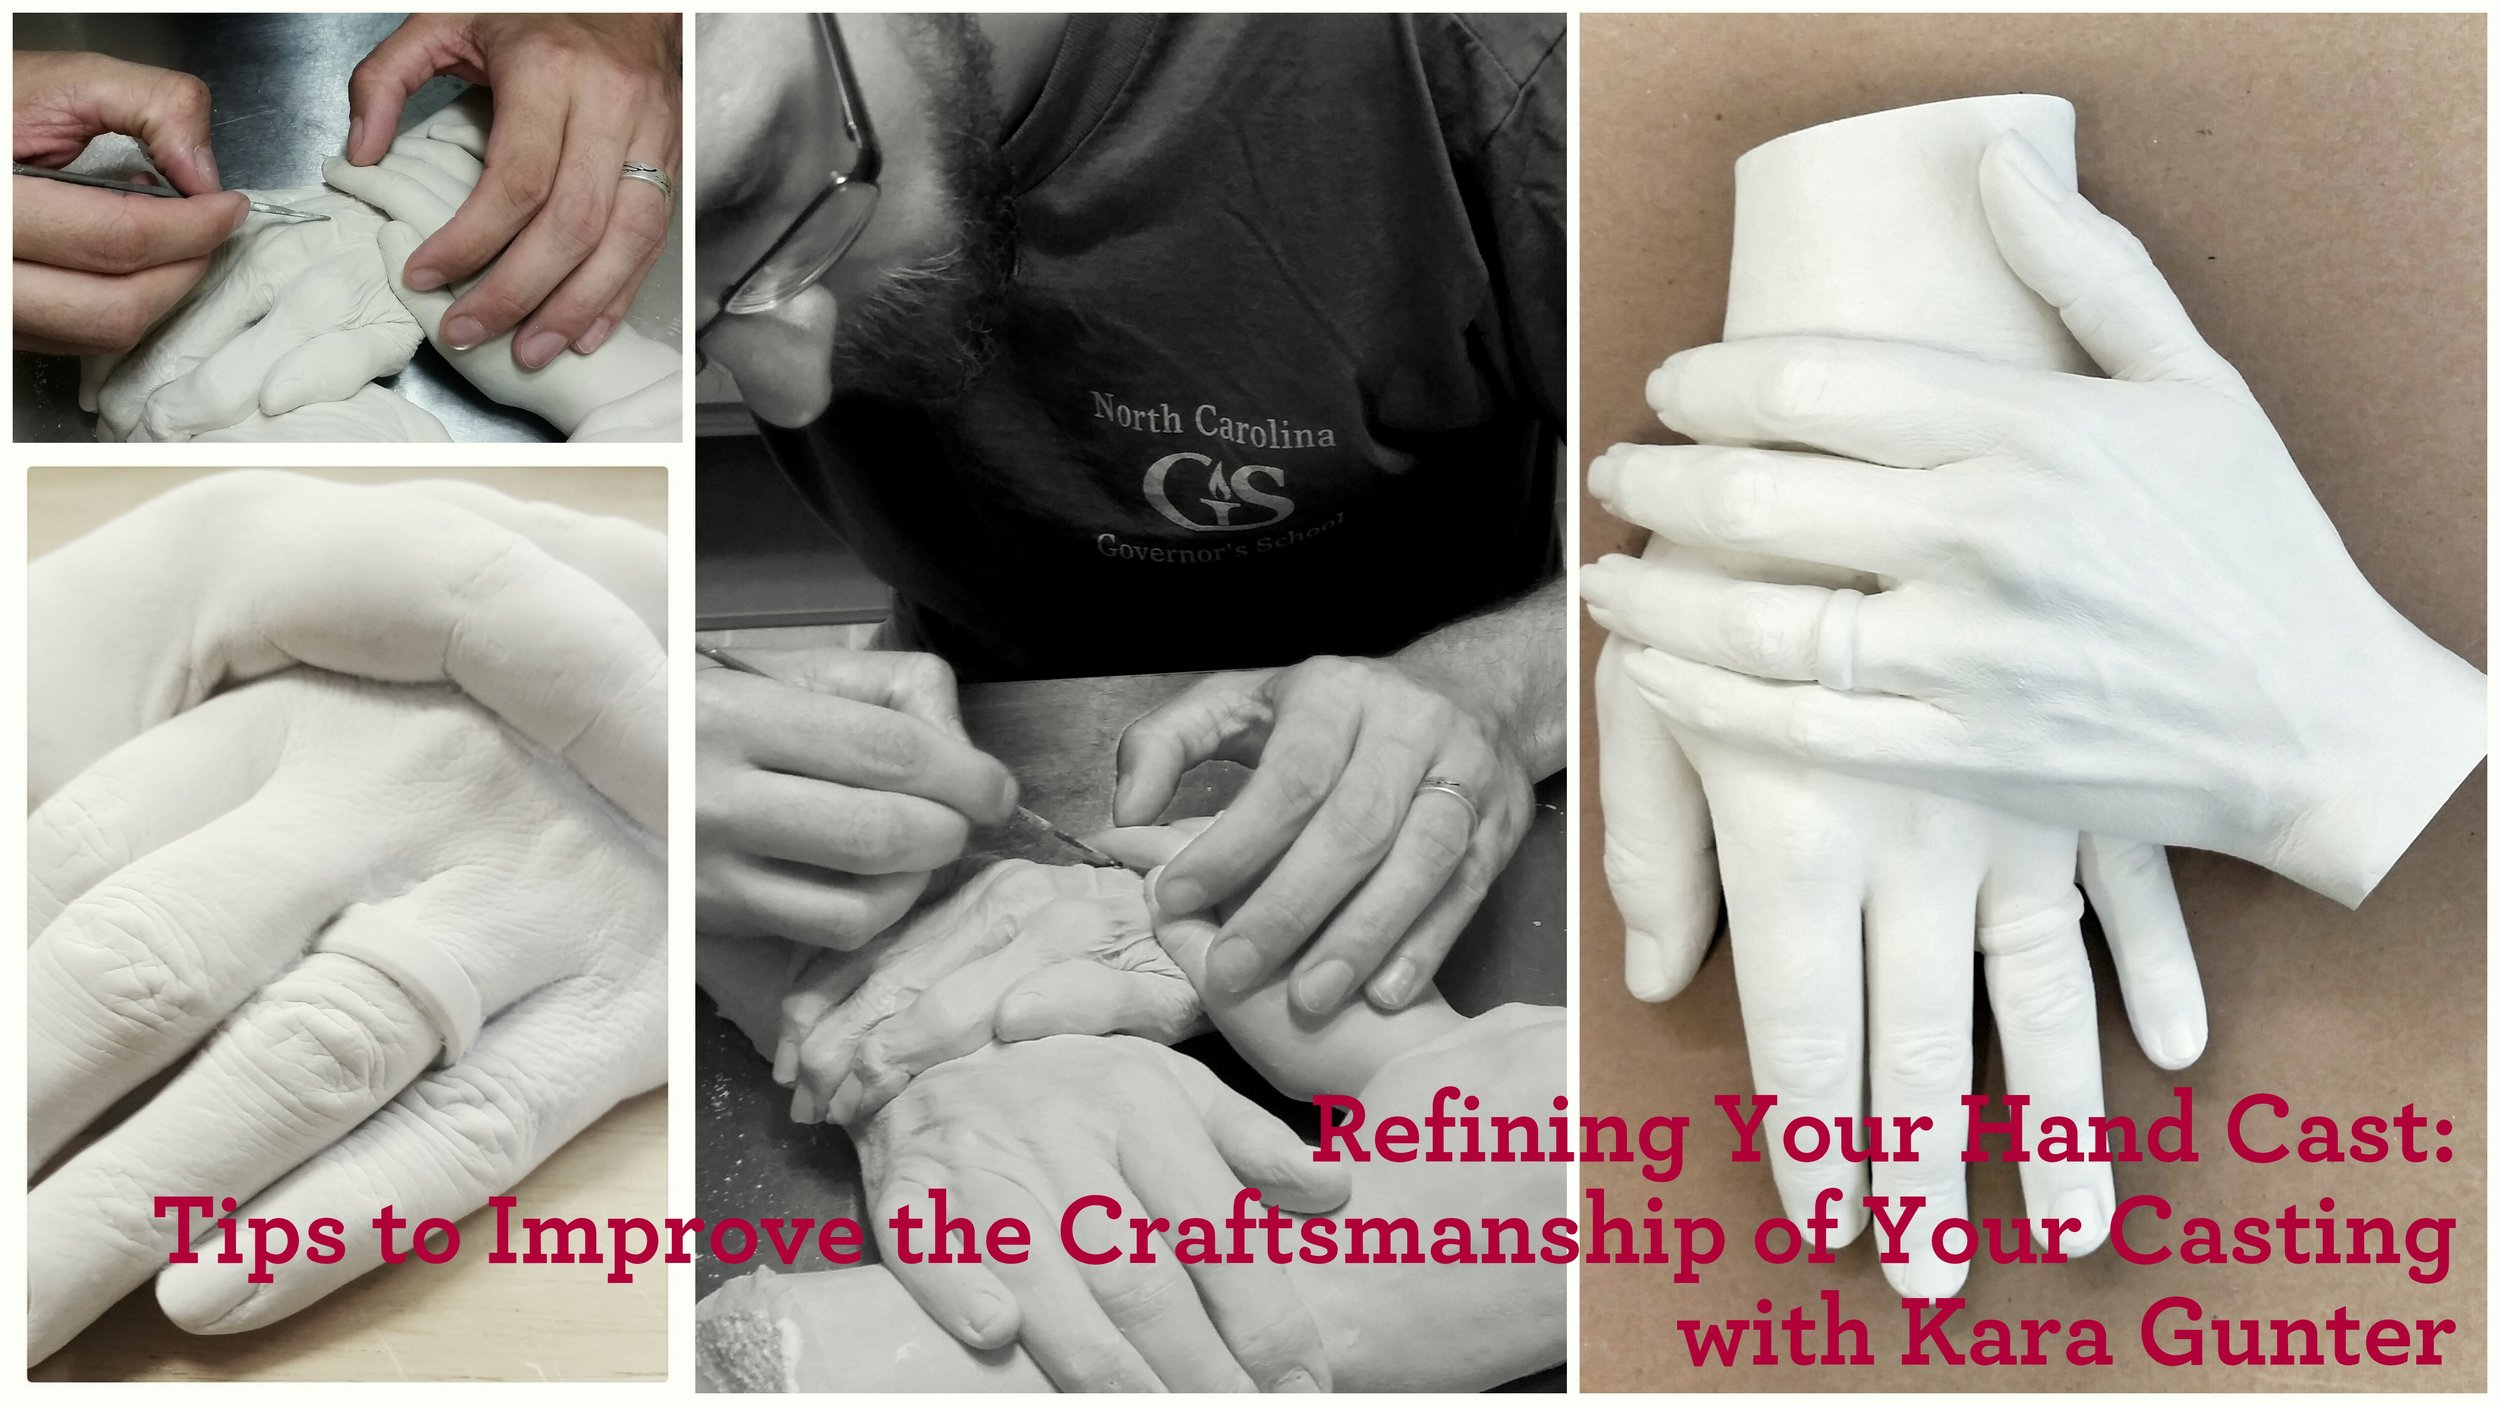 Class Three - Refining Your Hand Cast: Tips to Improve the Craftsmanship of Your CastingSkillshare Link:https://skl.sh/2GNkEwDThis class is the third in a series of three classes, which will walk you through the process of refining the casting you made after watching Making the Moldand Filling the Void.This series of classes is designed for the absolute beginner, however an adventurous spirit is a must! This thorough series of classes will walk you through making a mold, pouring the mold, and refining the casting. If you are interested in beginning your own hand casting business, you're an artist looking for an accessible introduction to body or life casting, or you want to take your own hand cast for your family or friends to the next level, this is a great place to start.